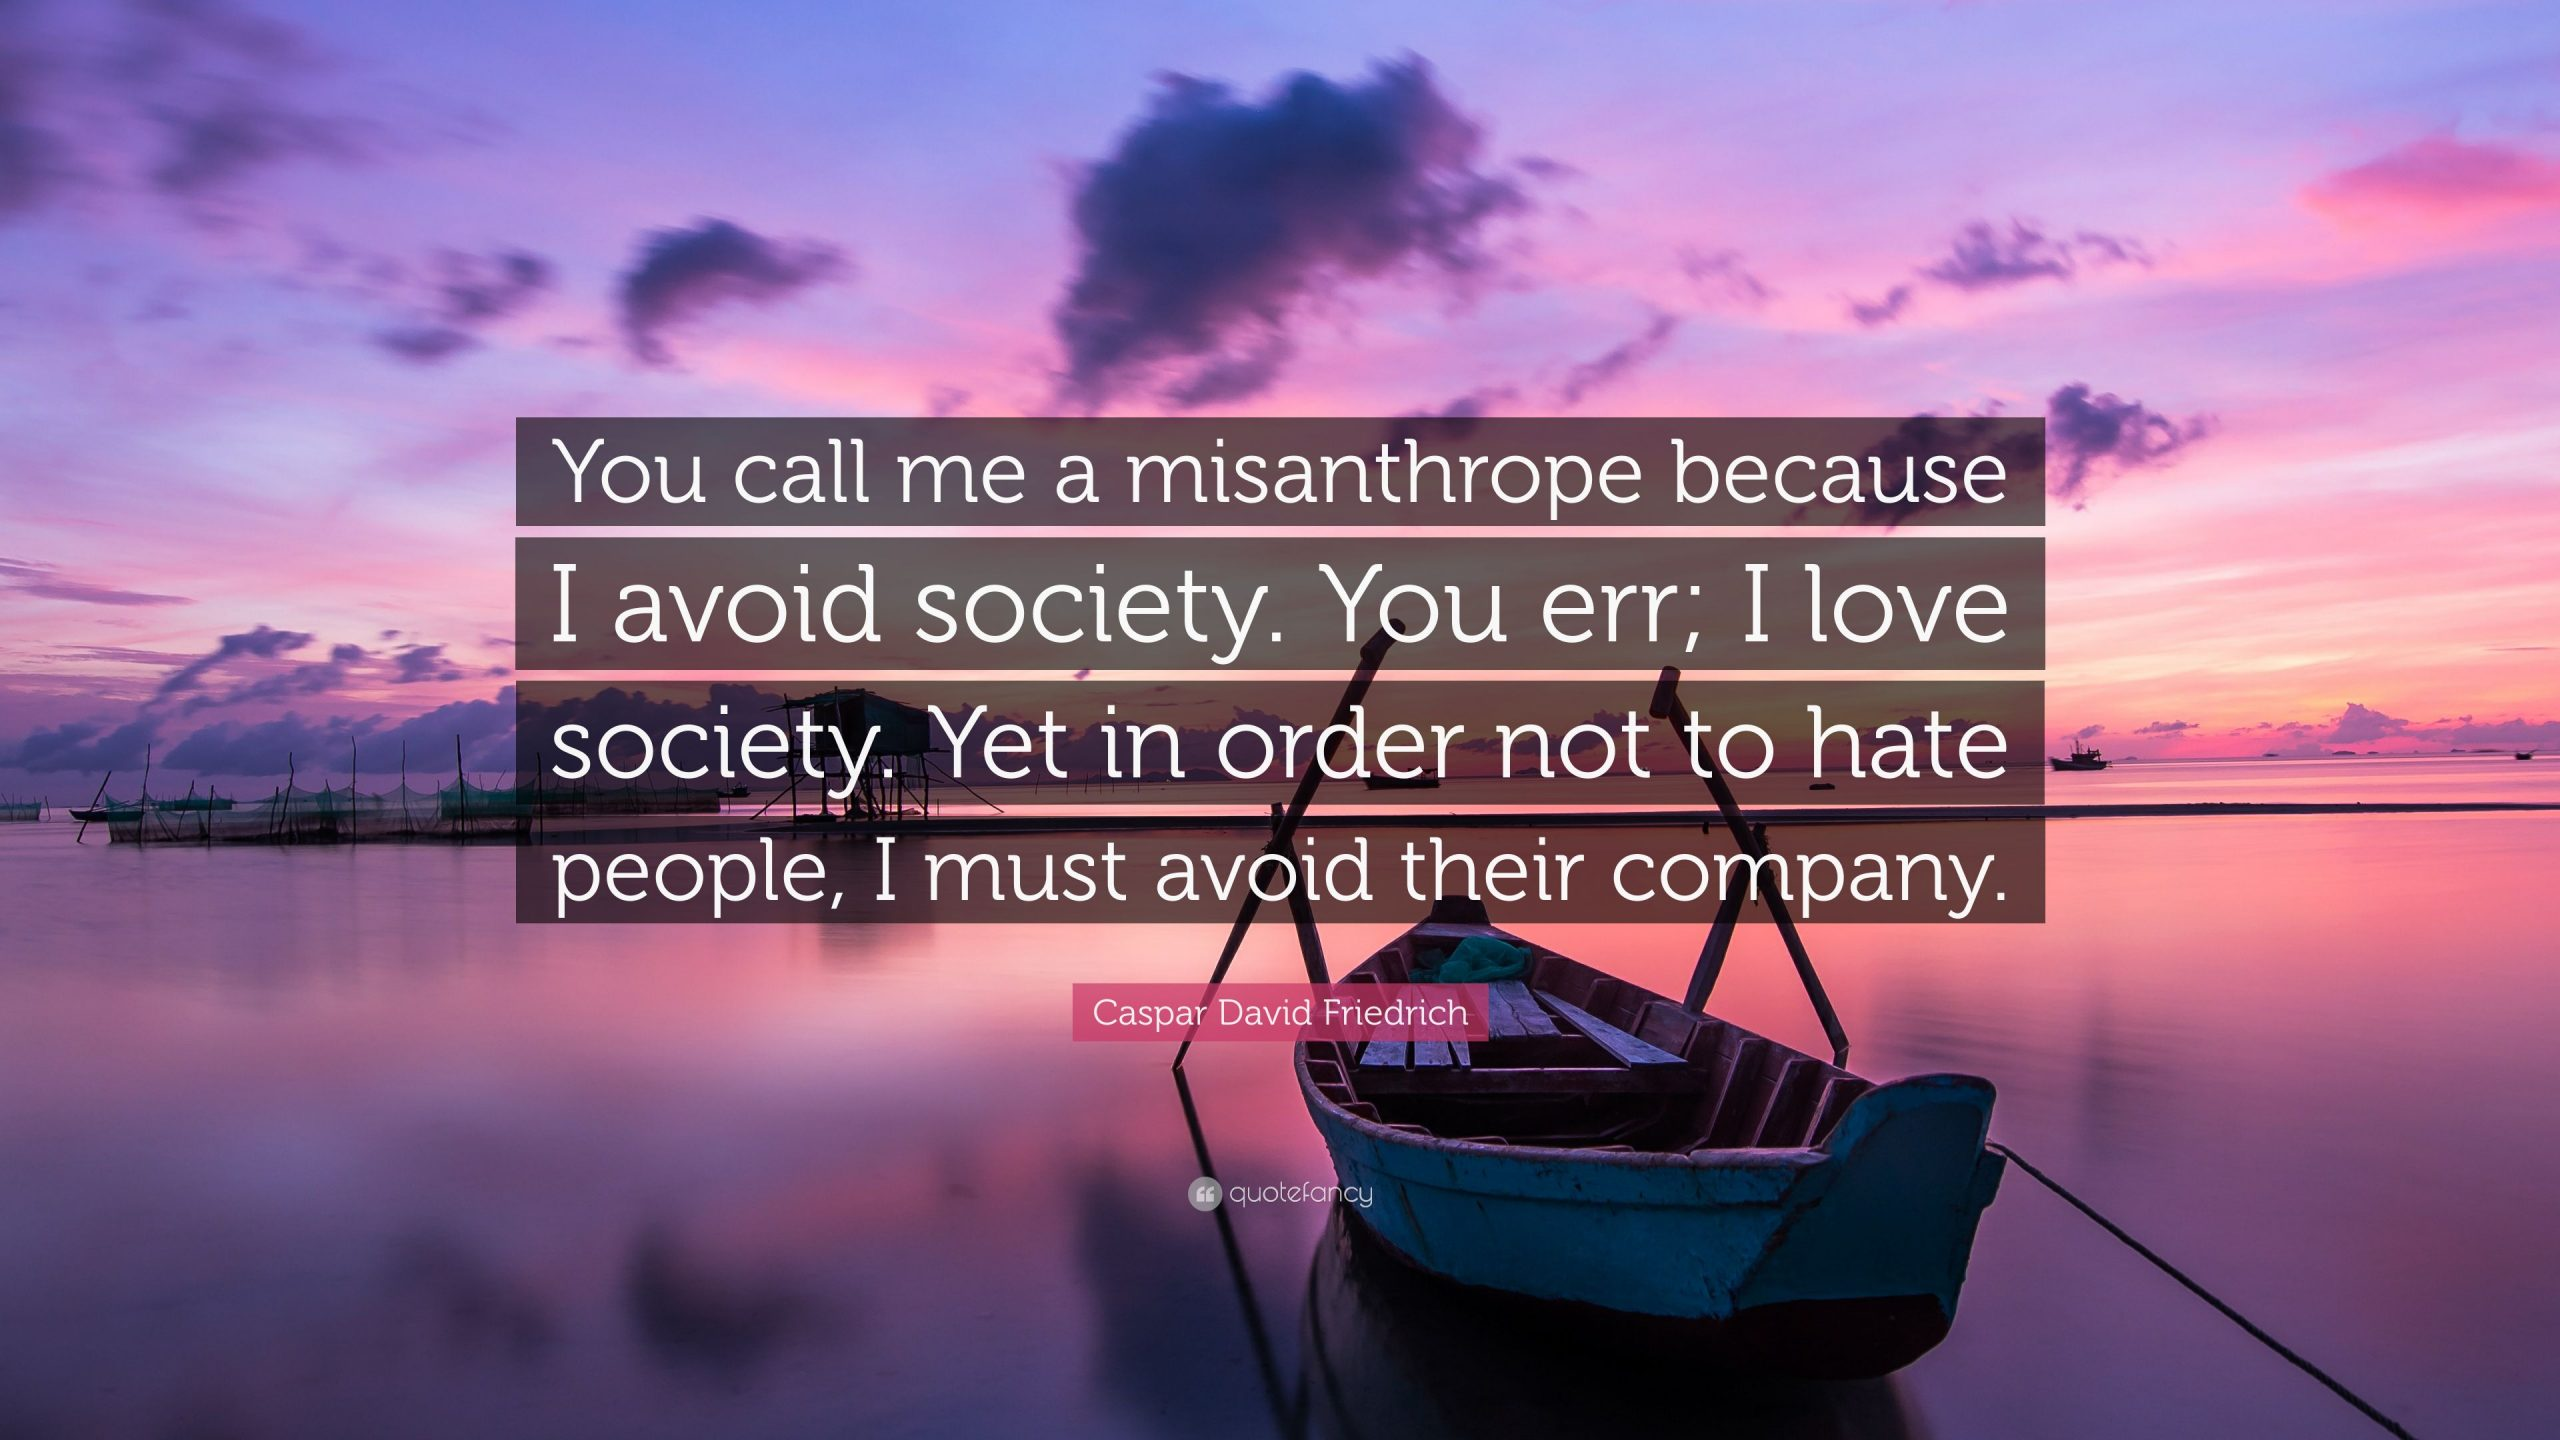 12 Signs You Are a People-Hating Misanthrope